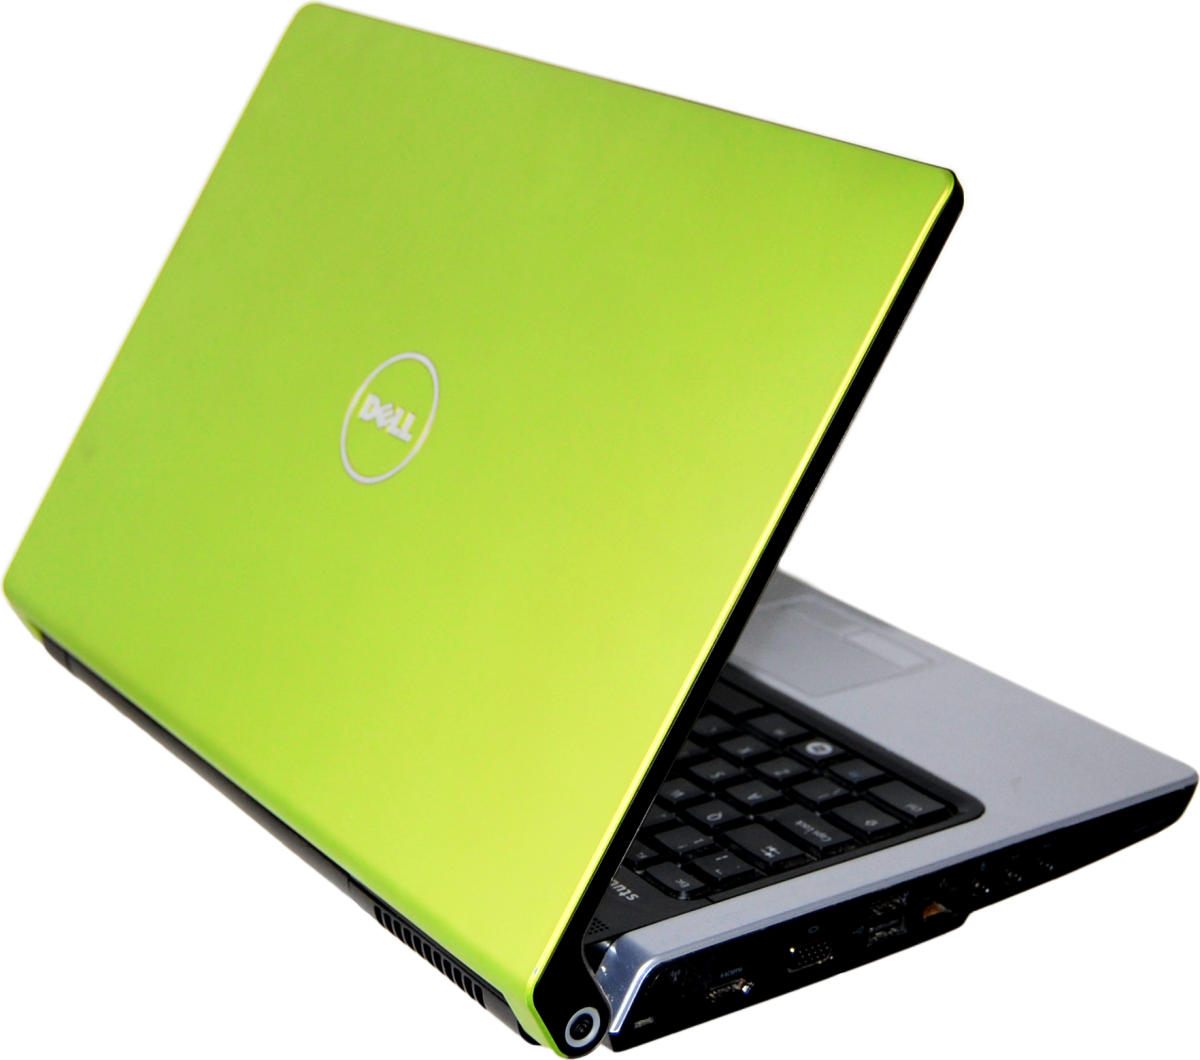 Laptop notebook PNG image image with transparent background 17